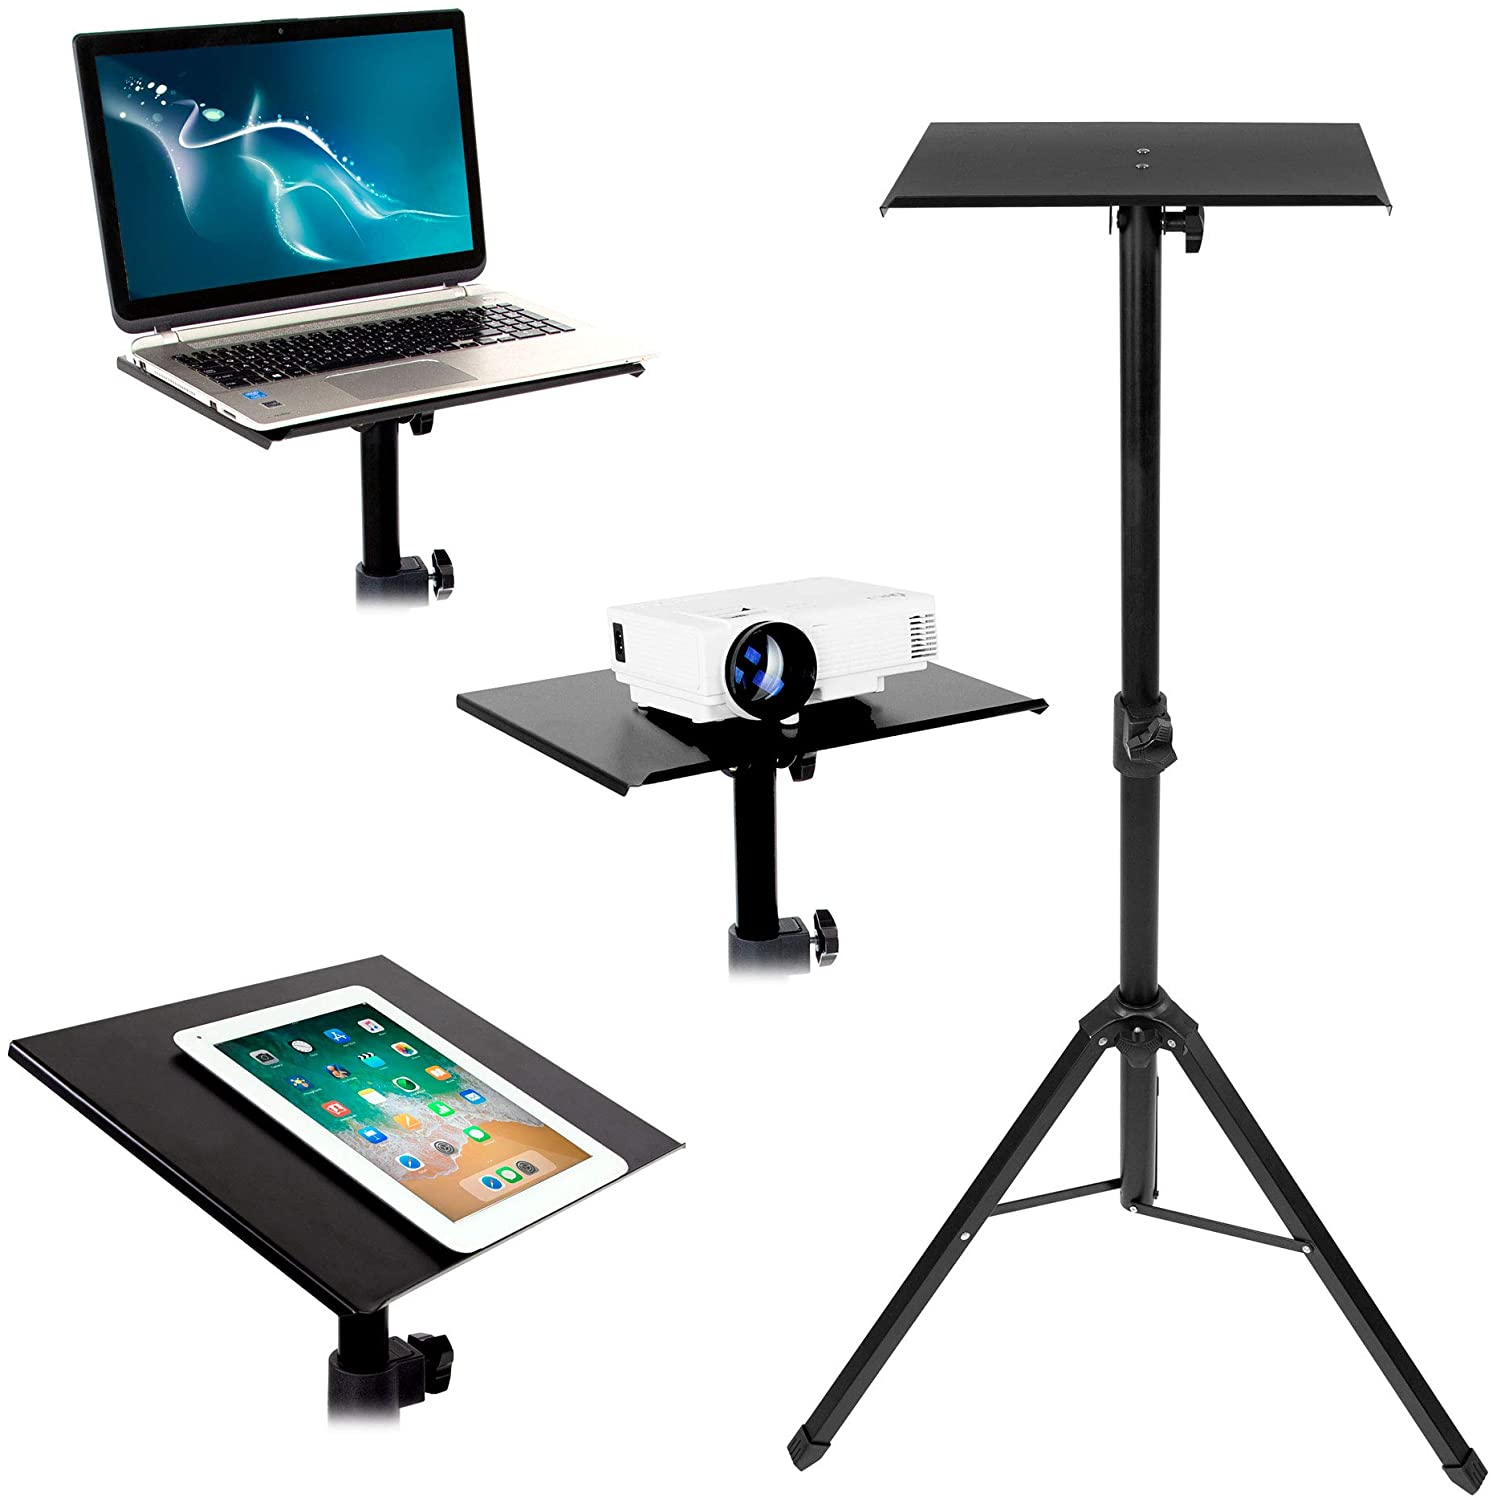 Mount It Tripod Projector Stand, Adjustable DJ Laptop Stand with Height  and Tilt Adjustment, Portable Laptop Projector Table with Steel Tripod Base  ...